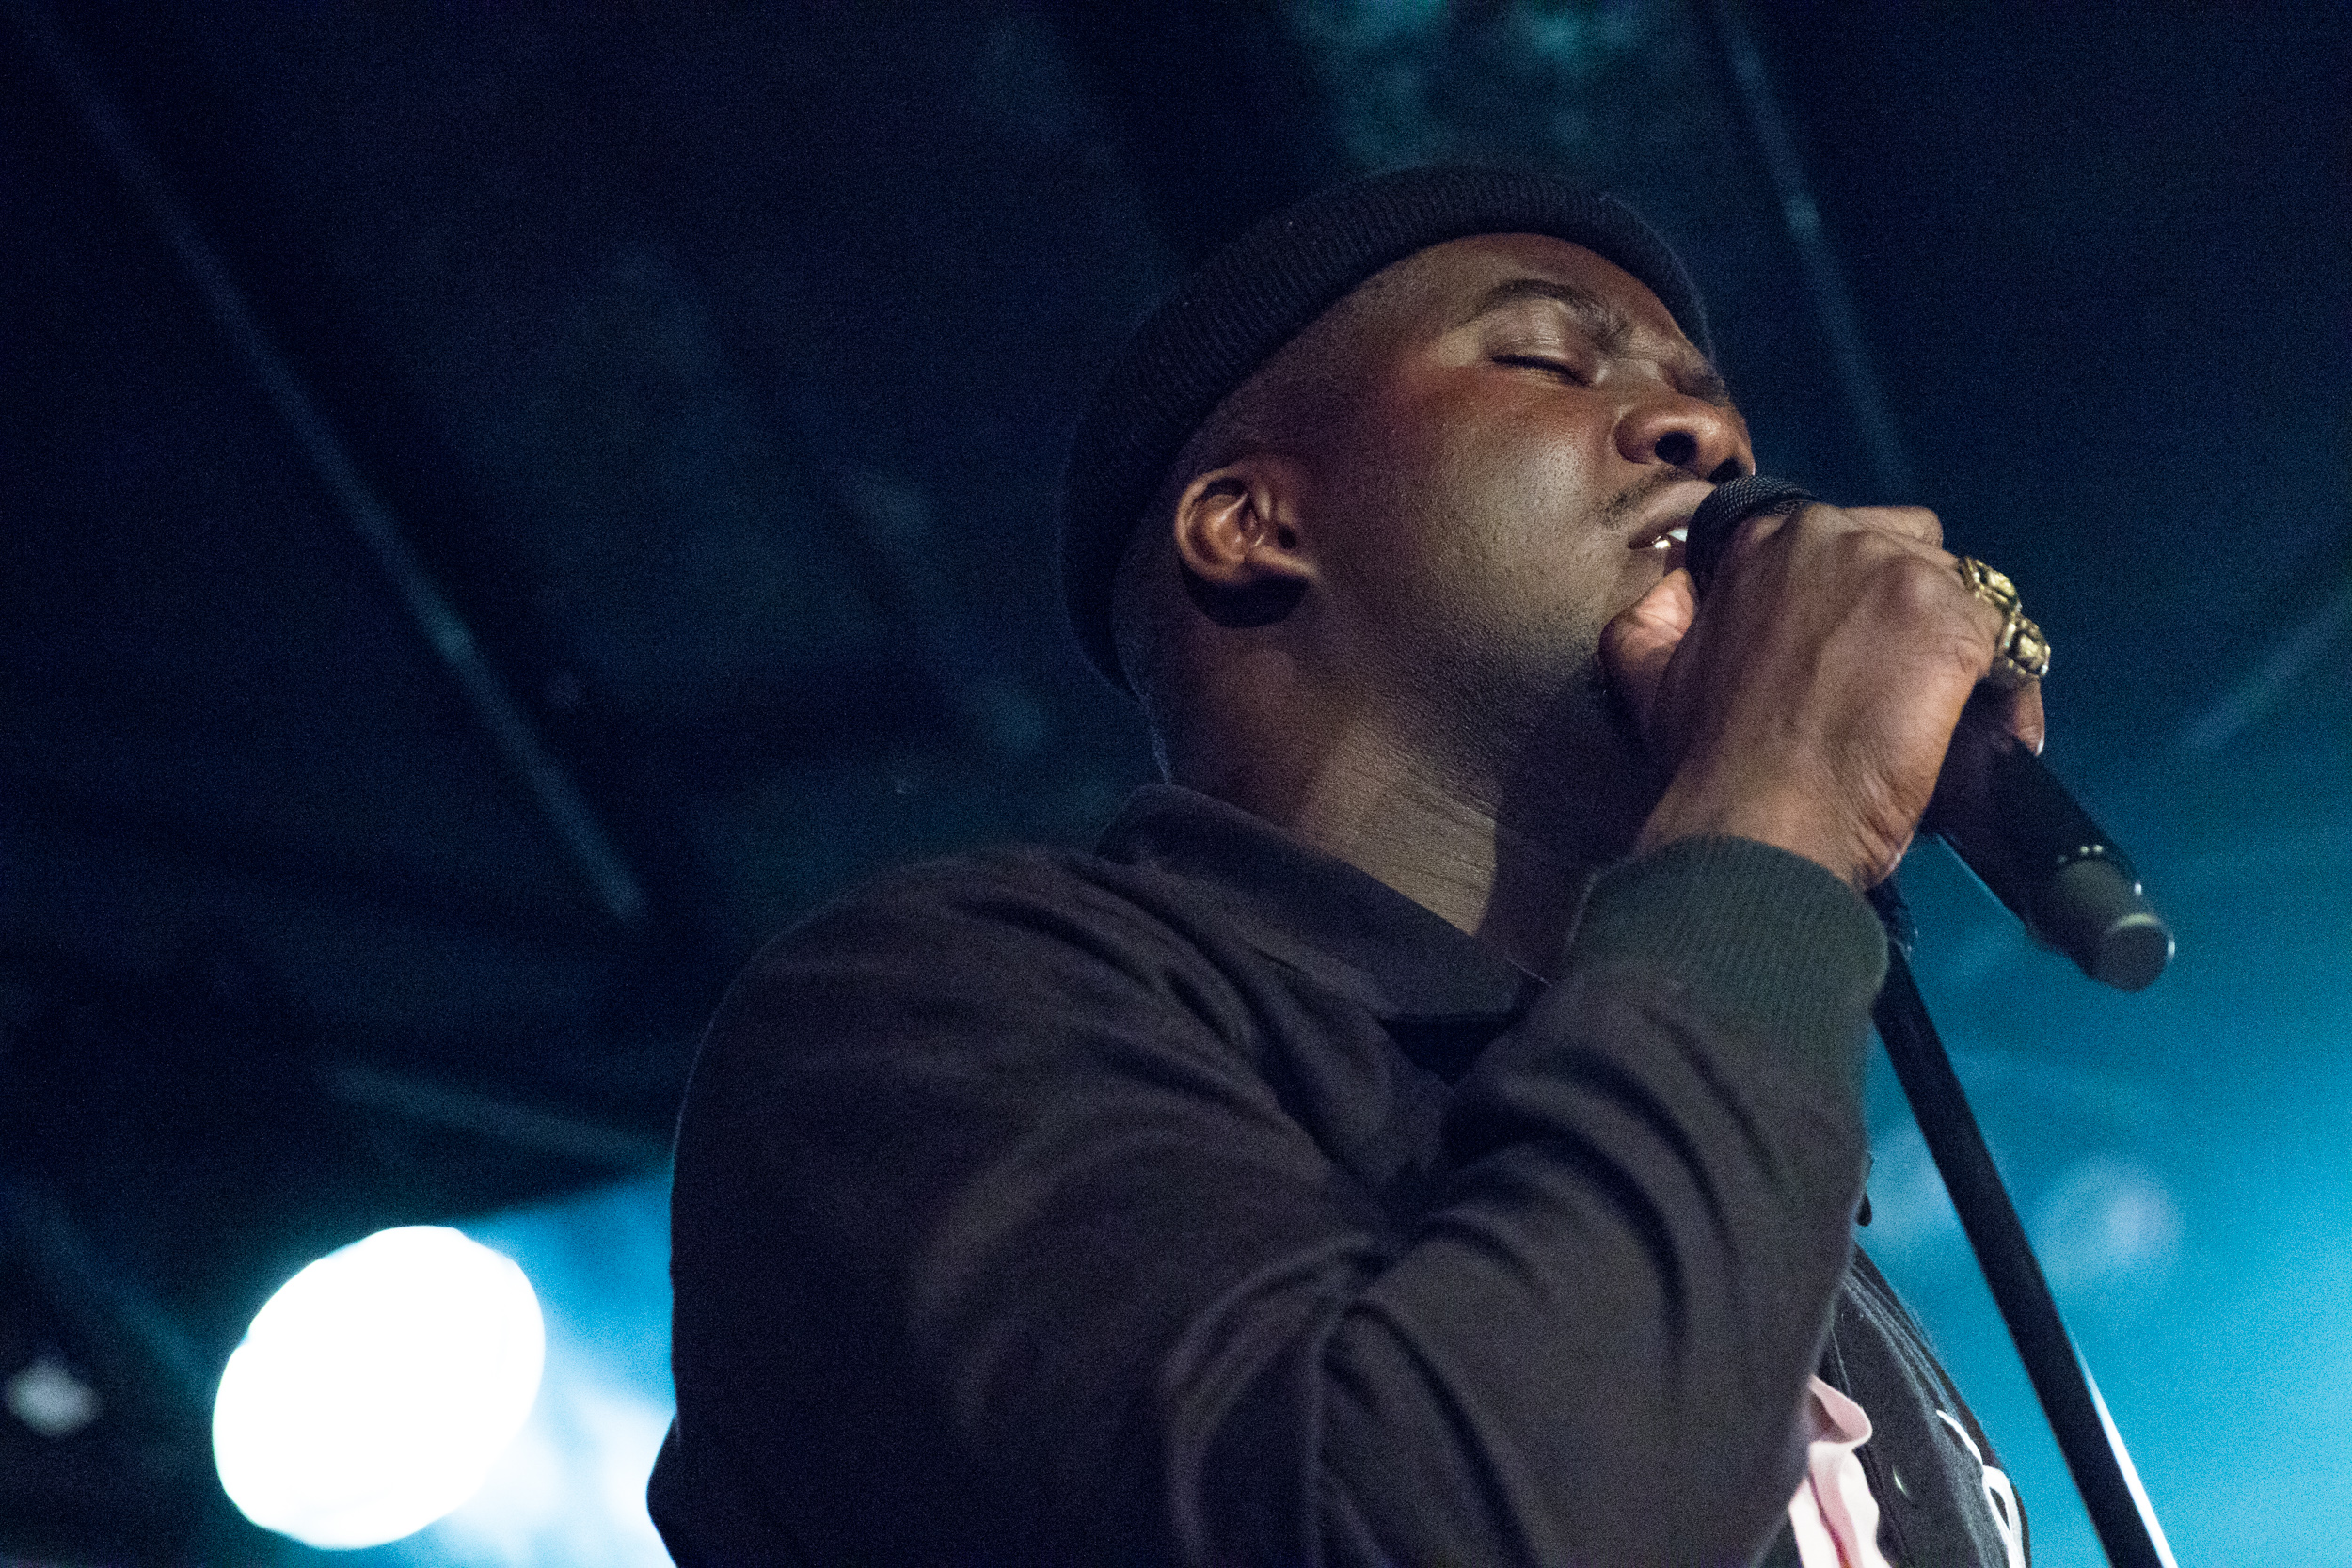 1_JacobBanks_CornerHotel_SarahRix-5910.jpg